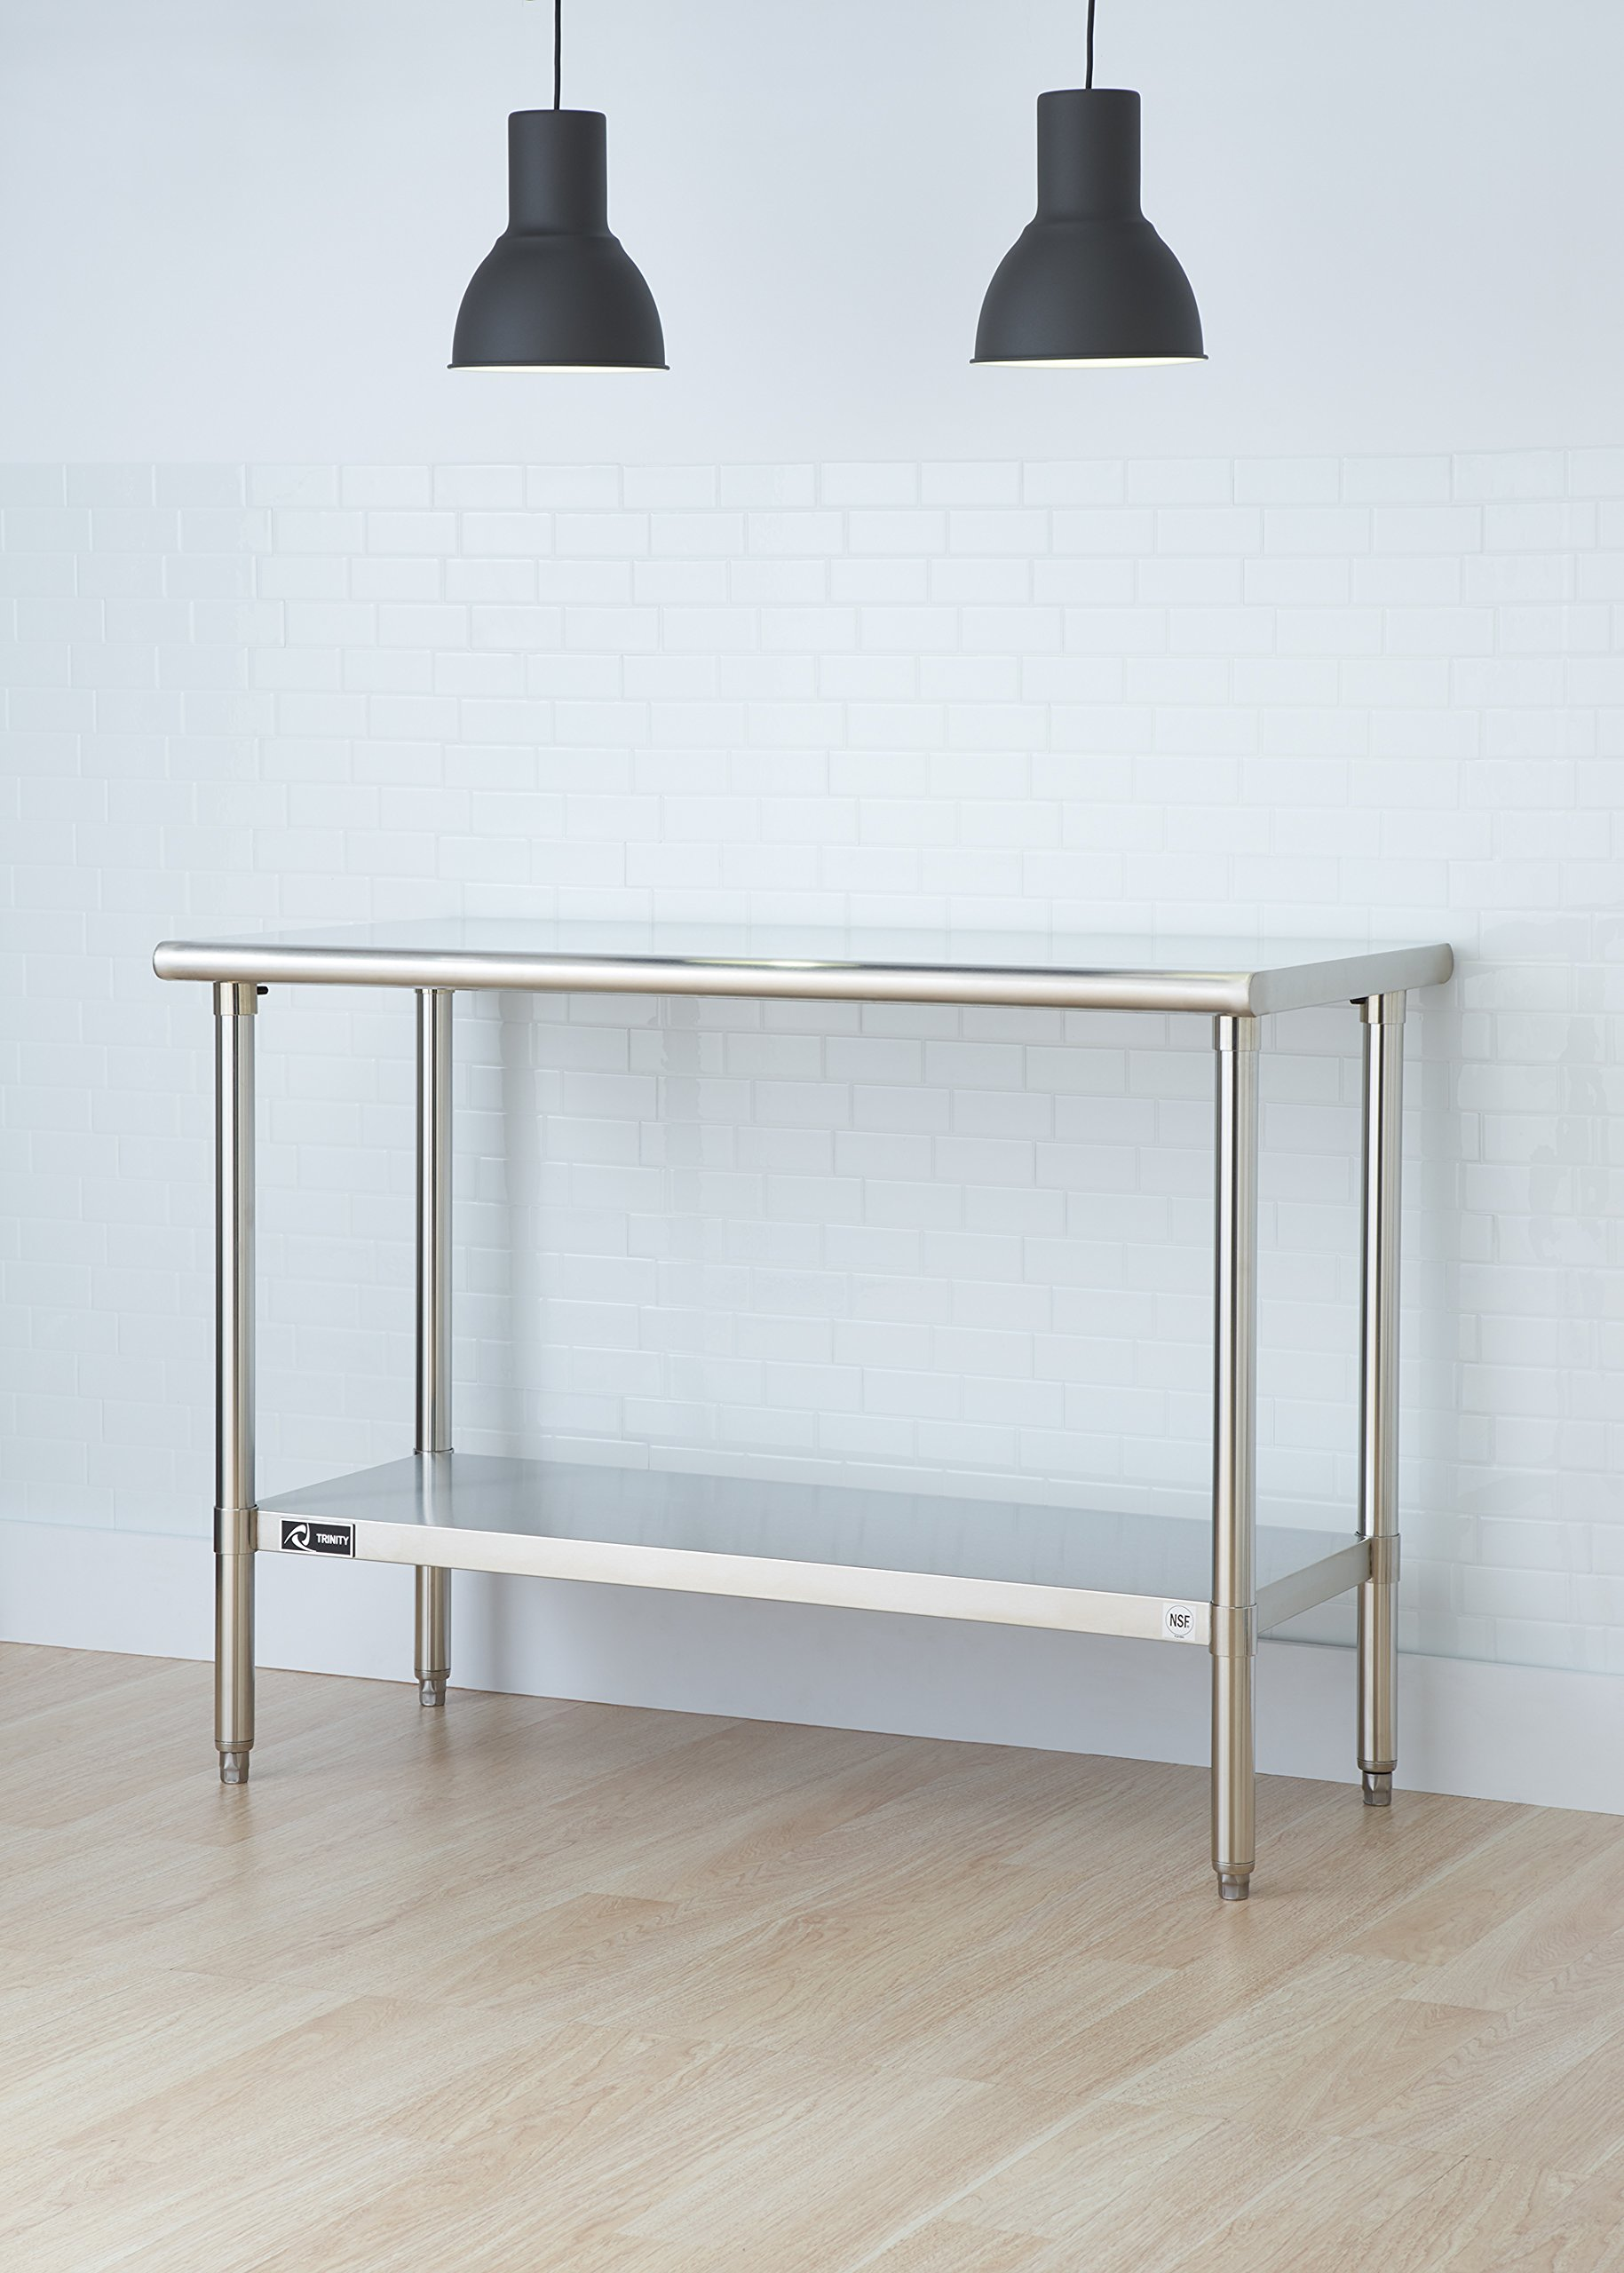 TRINITY EcoStorage NSF Stainless Steel Table, 48-Inch by Trinity (Image #4)